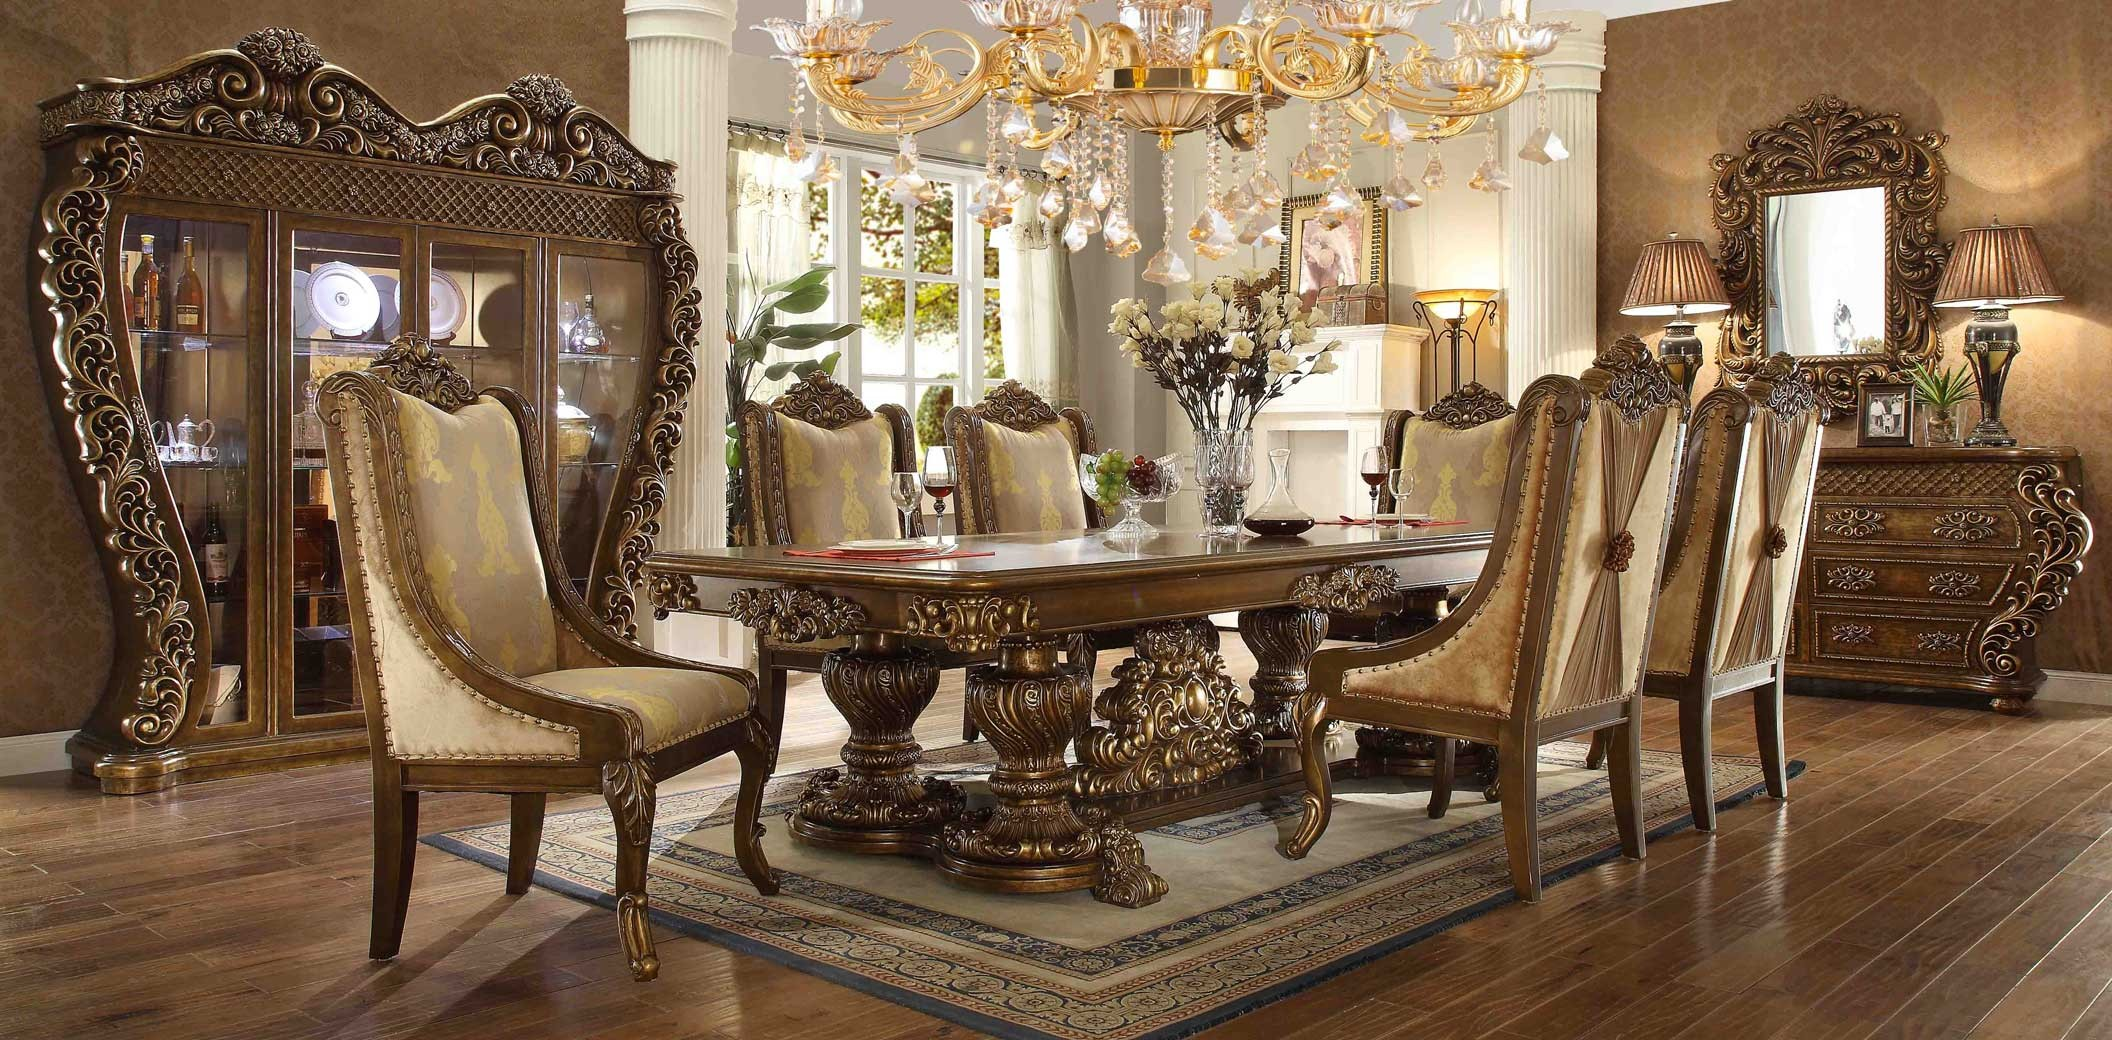 HD 8011 Homey Design Dining room set Victorian European \u0026 Classic design Sofa Set & HD 8011 Homey Design Dining room set Victorian European \u0026 Classic ...